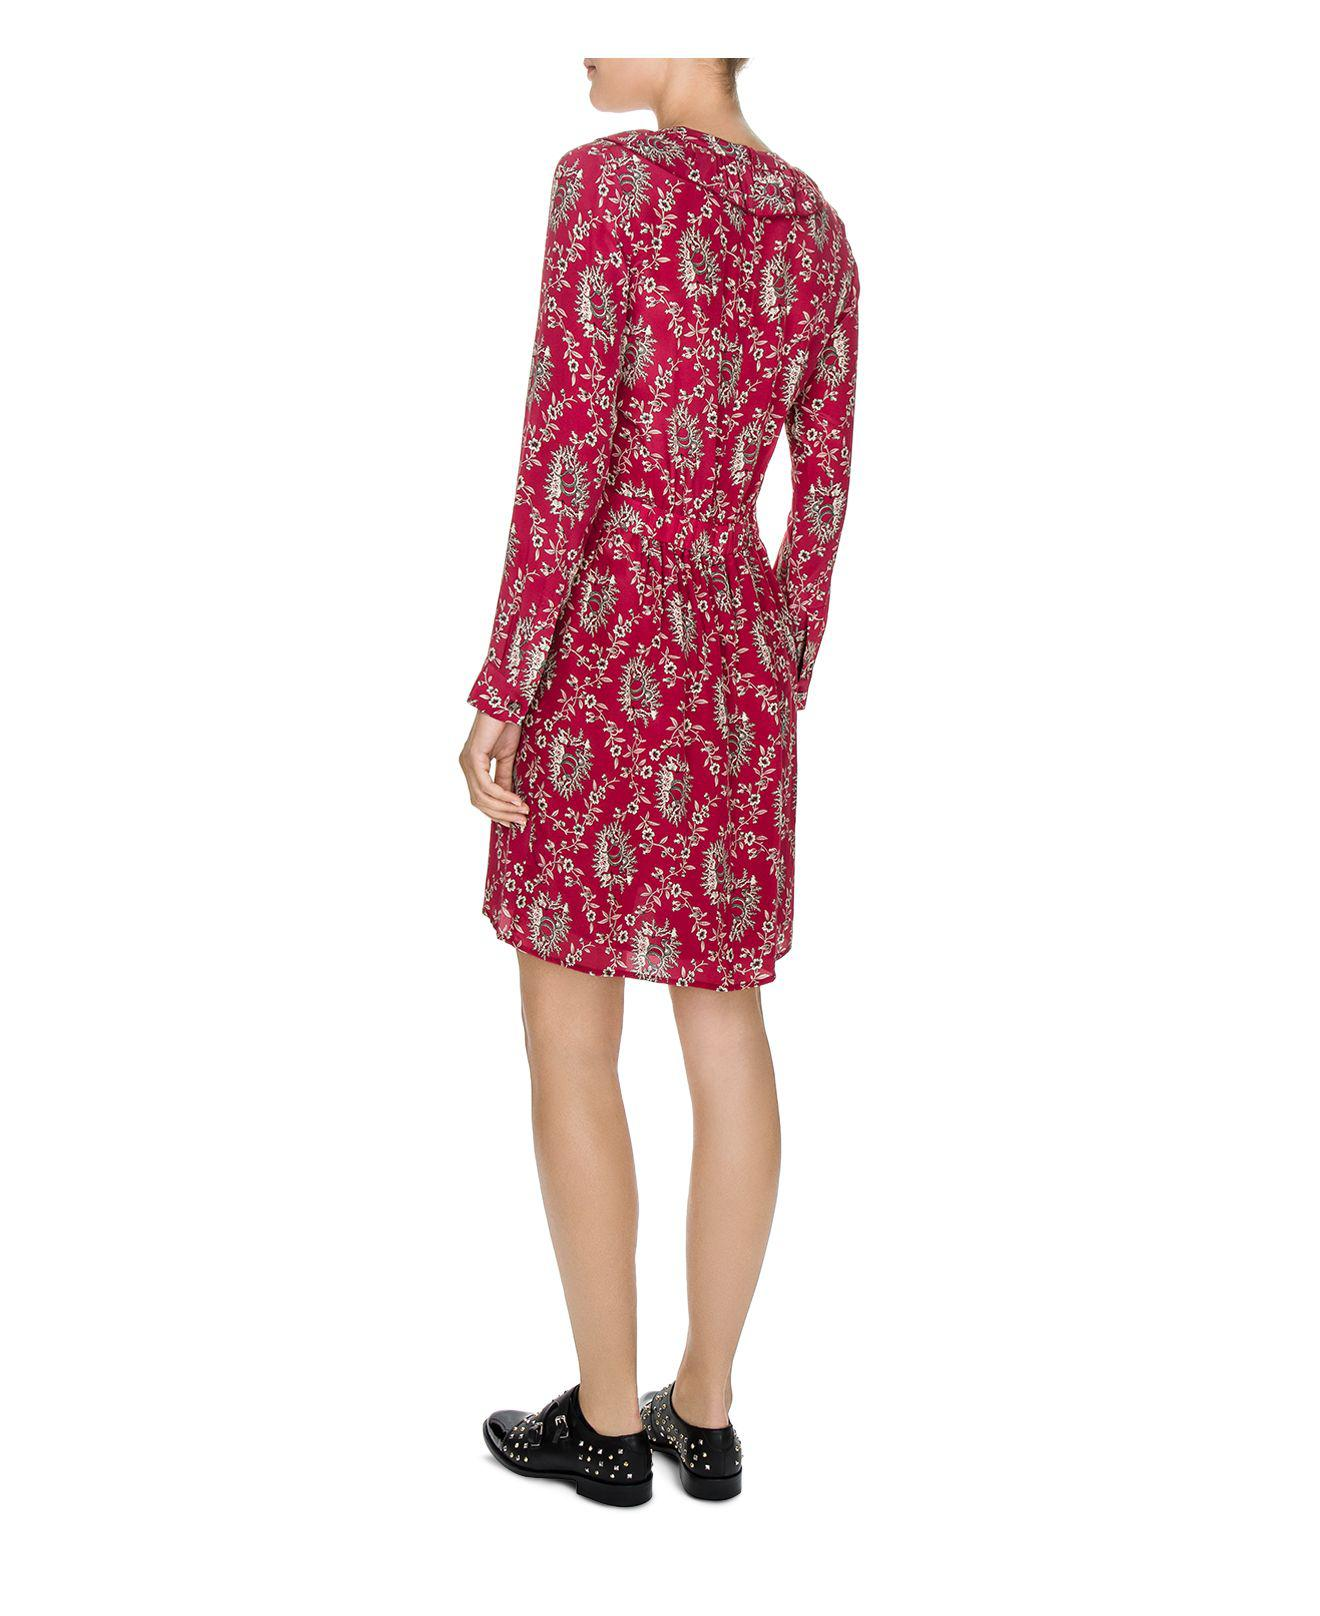 de36e343efd600 The Kooples Rodeo Snake Printed Silk Dress in Red - Lyst